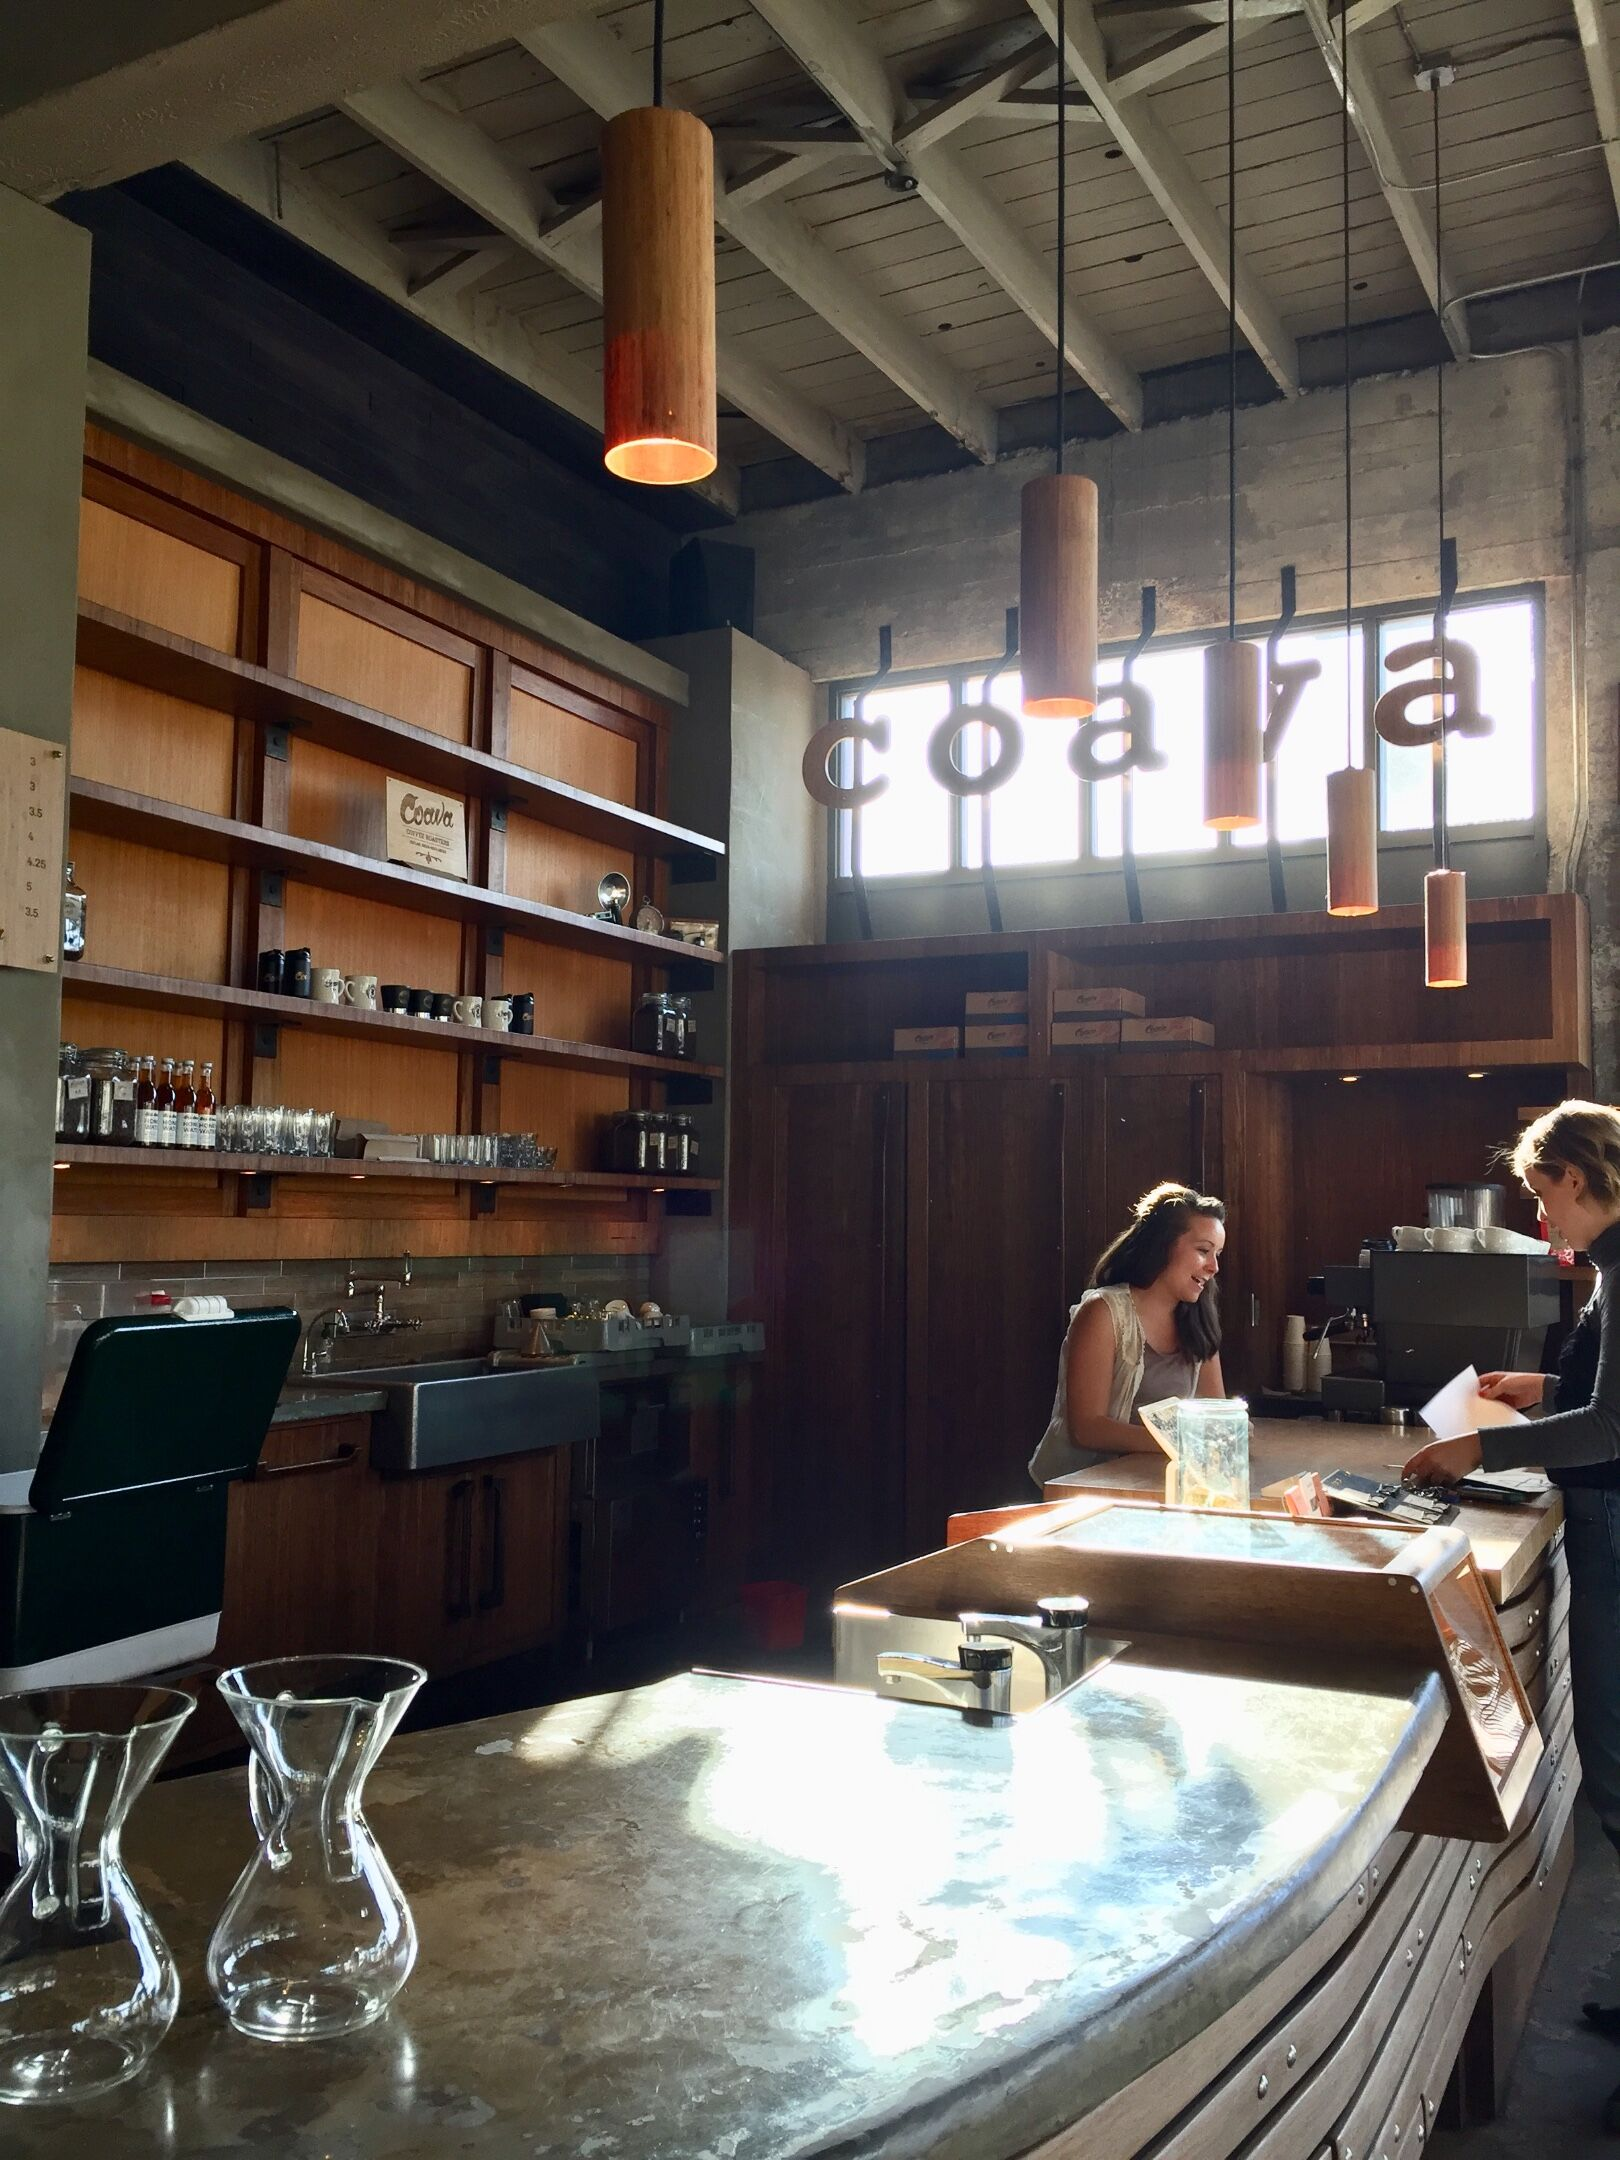 Portland is known for its coffee, including Coava brewery